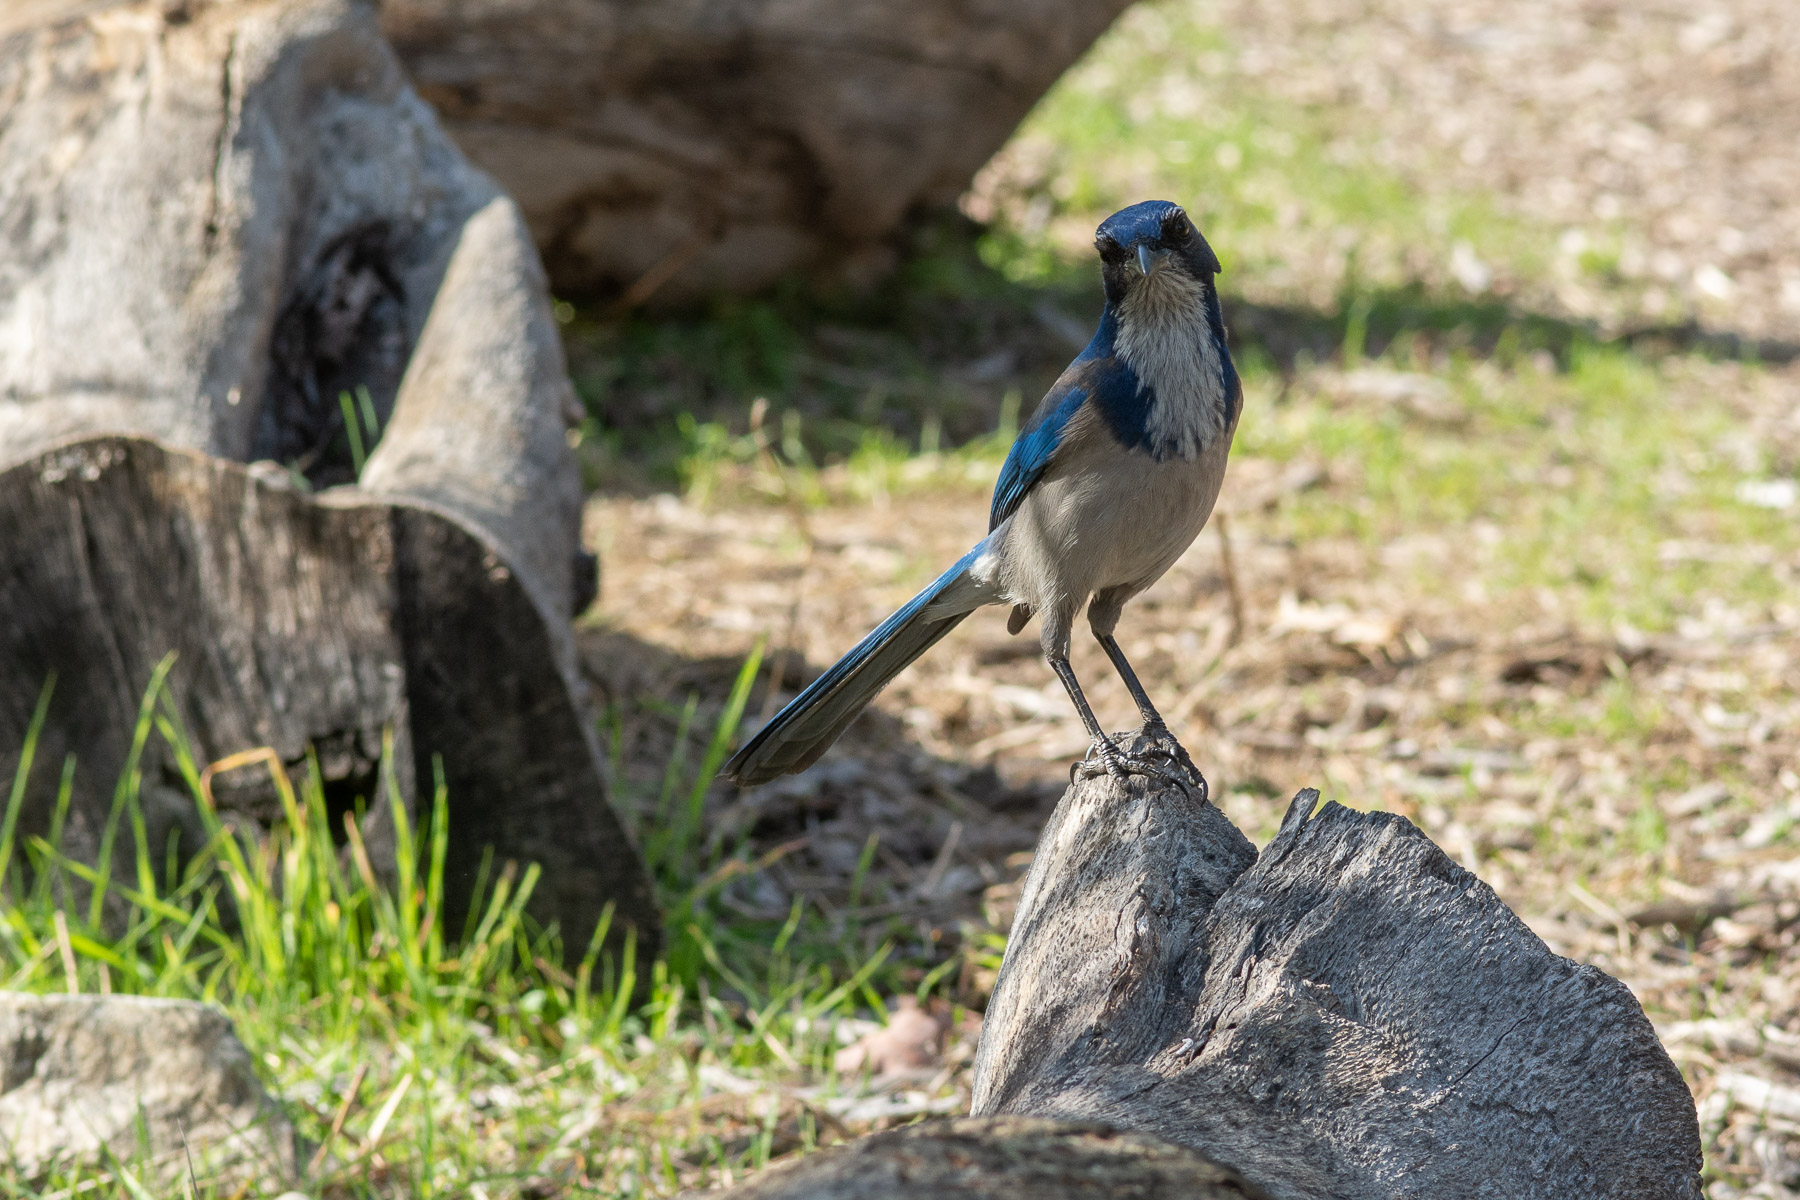 quizzical scrub jay enjoys the park